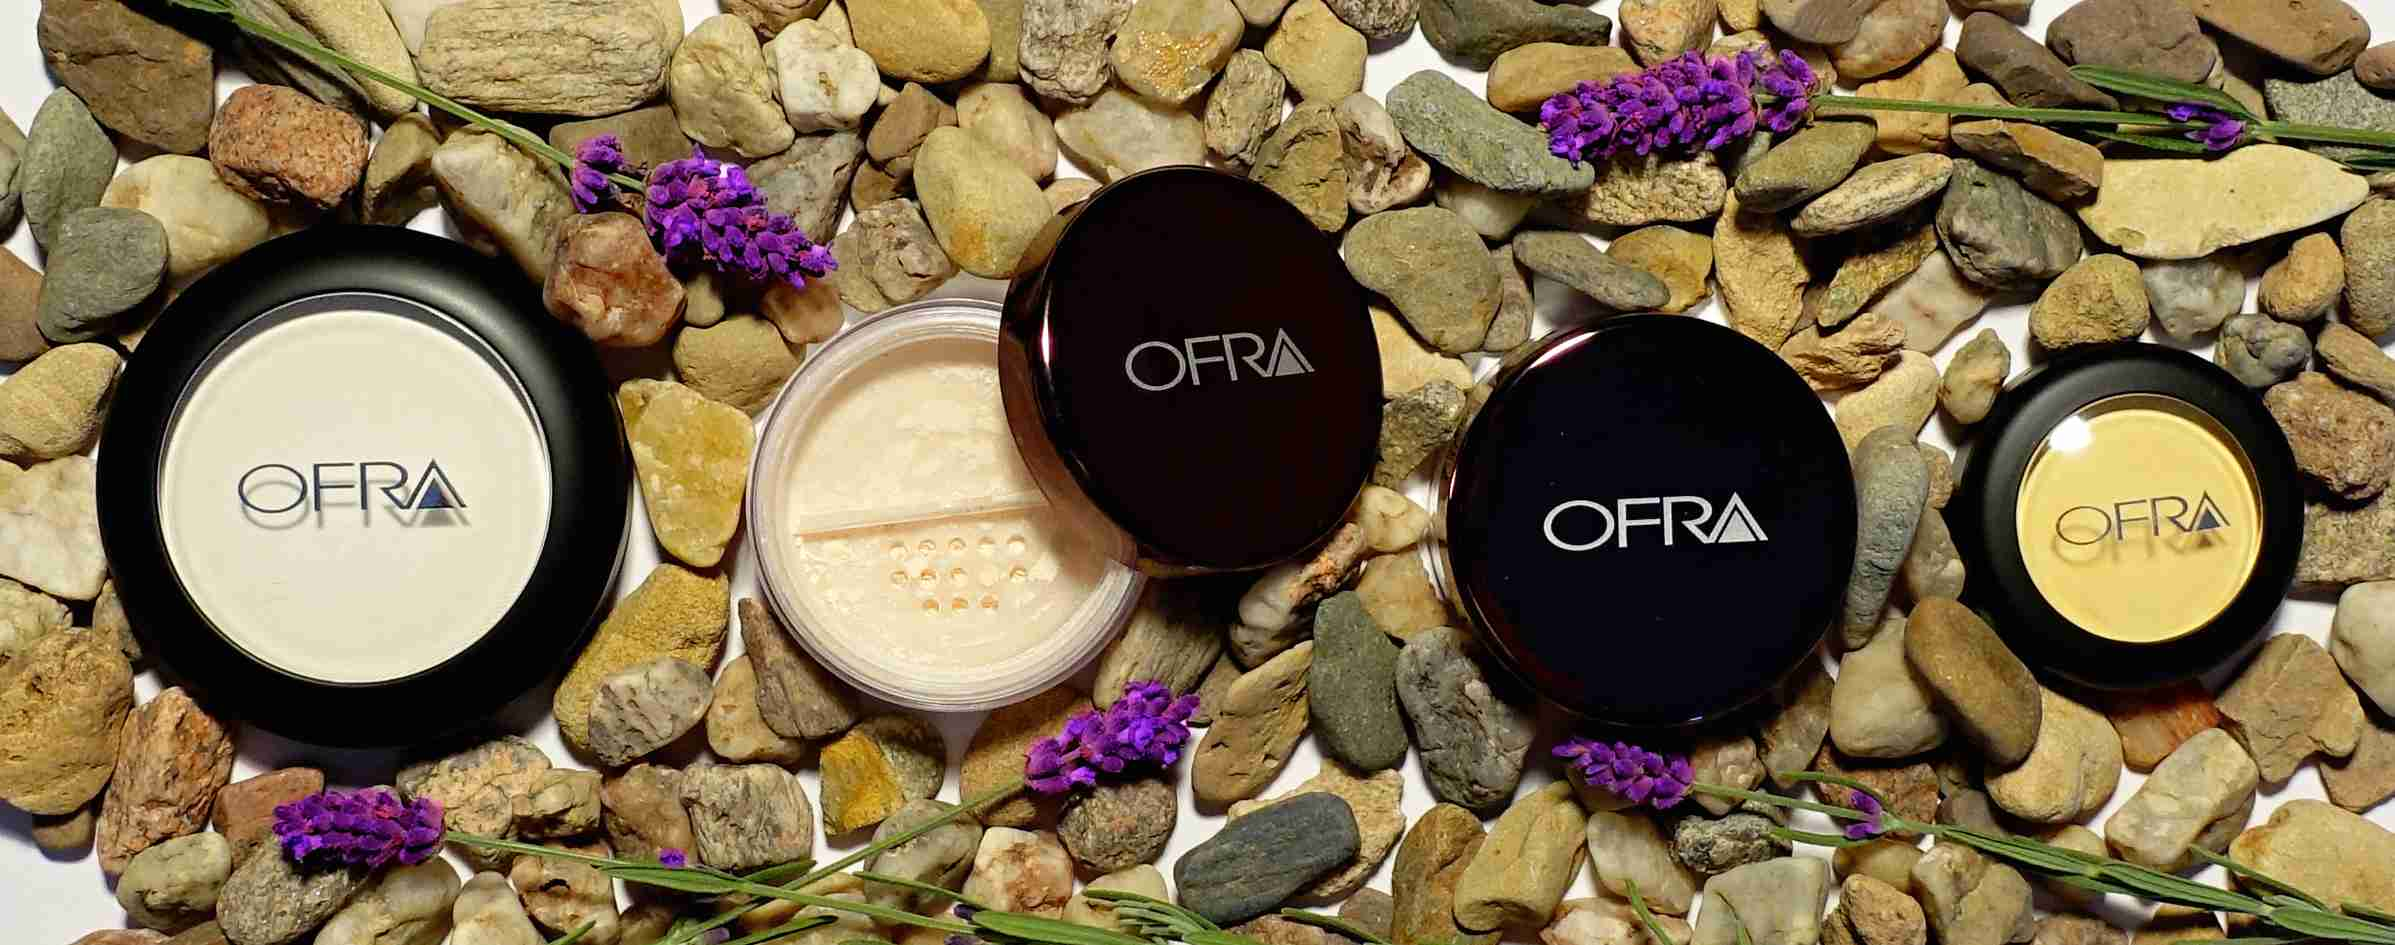 Ofra-pudry